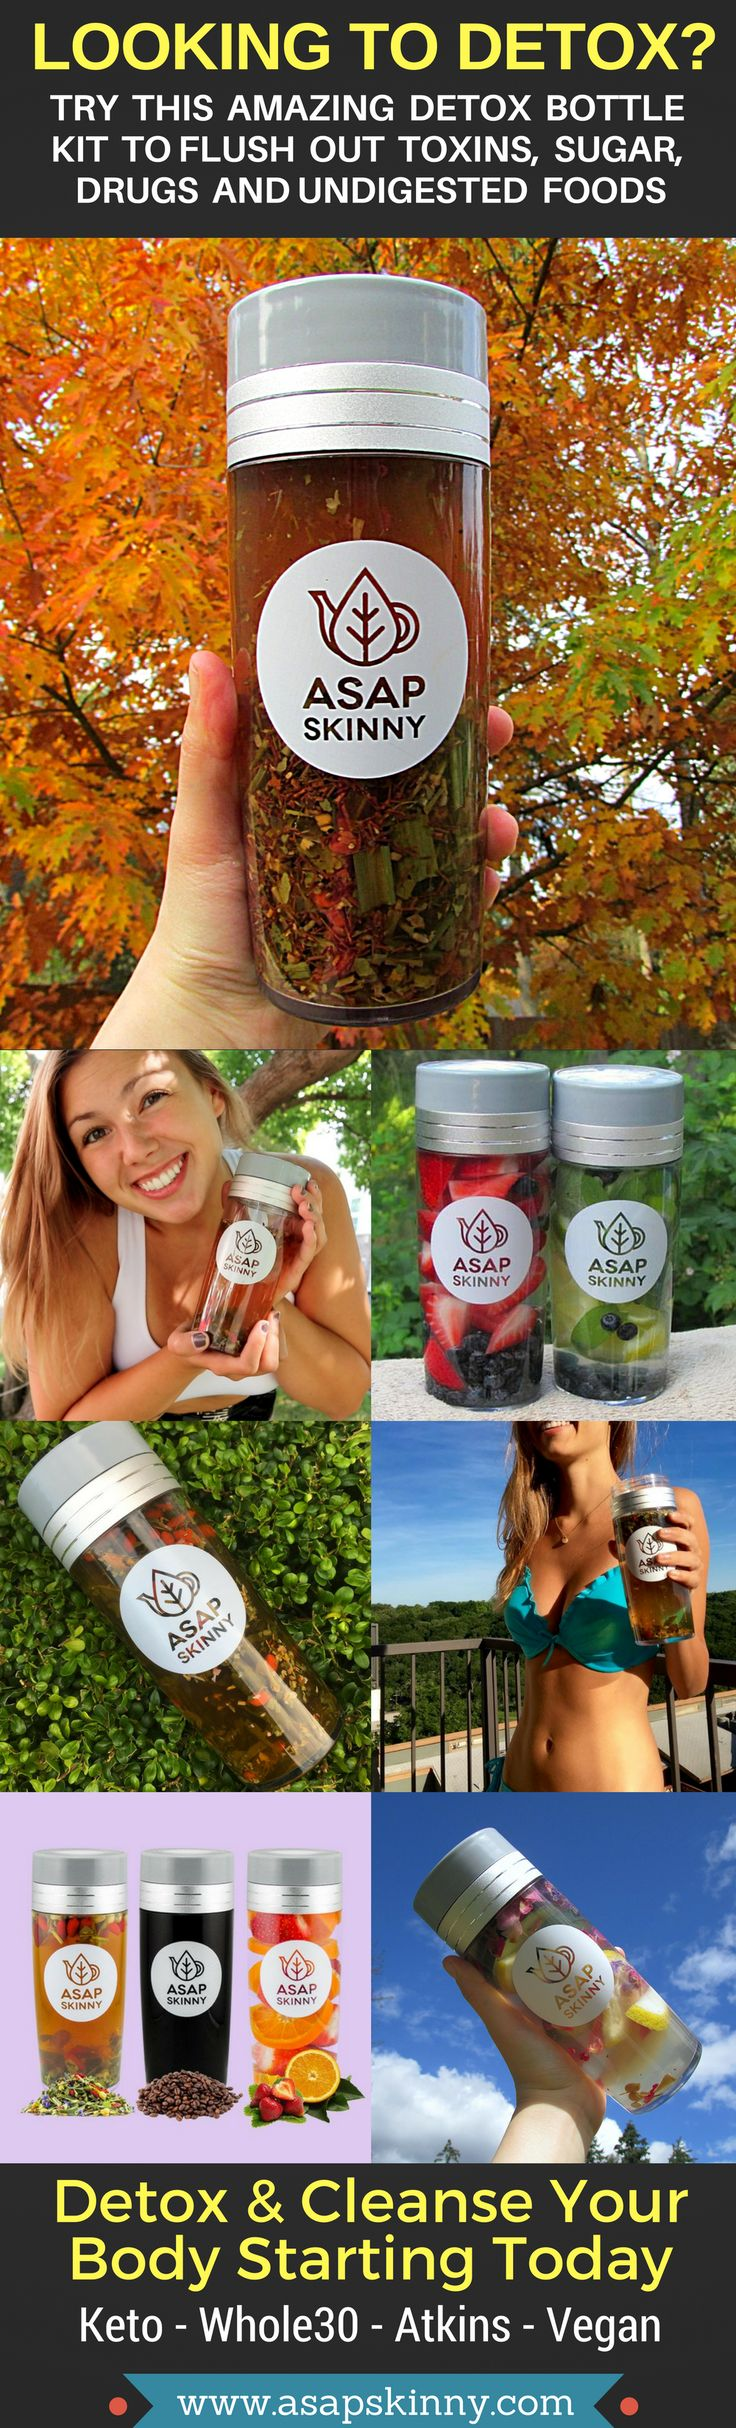 Detox & Cleanse With ASAPSKINNY! Kickstart Your New Healthy Lifestyle Fast & Easy. Our Versatile Detox Infuser Bottle Comes With a FREE Removable Mesh Strainer/Steeper. Perfect for Atkins - Keto - Whole30 - Vegan Lovers. Made For On-The-Go Busy People Who Are Looking To Get Fit and Healthy. Cleanse Anywhere, Anytime. Selling Out FAST! SHOP NOW ➡➡➡ www.asapskinny.com